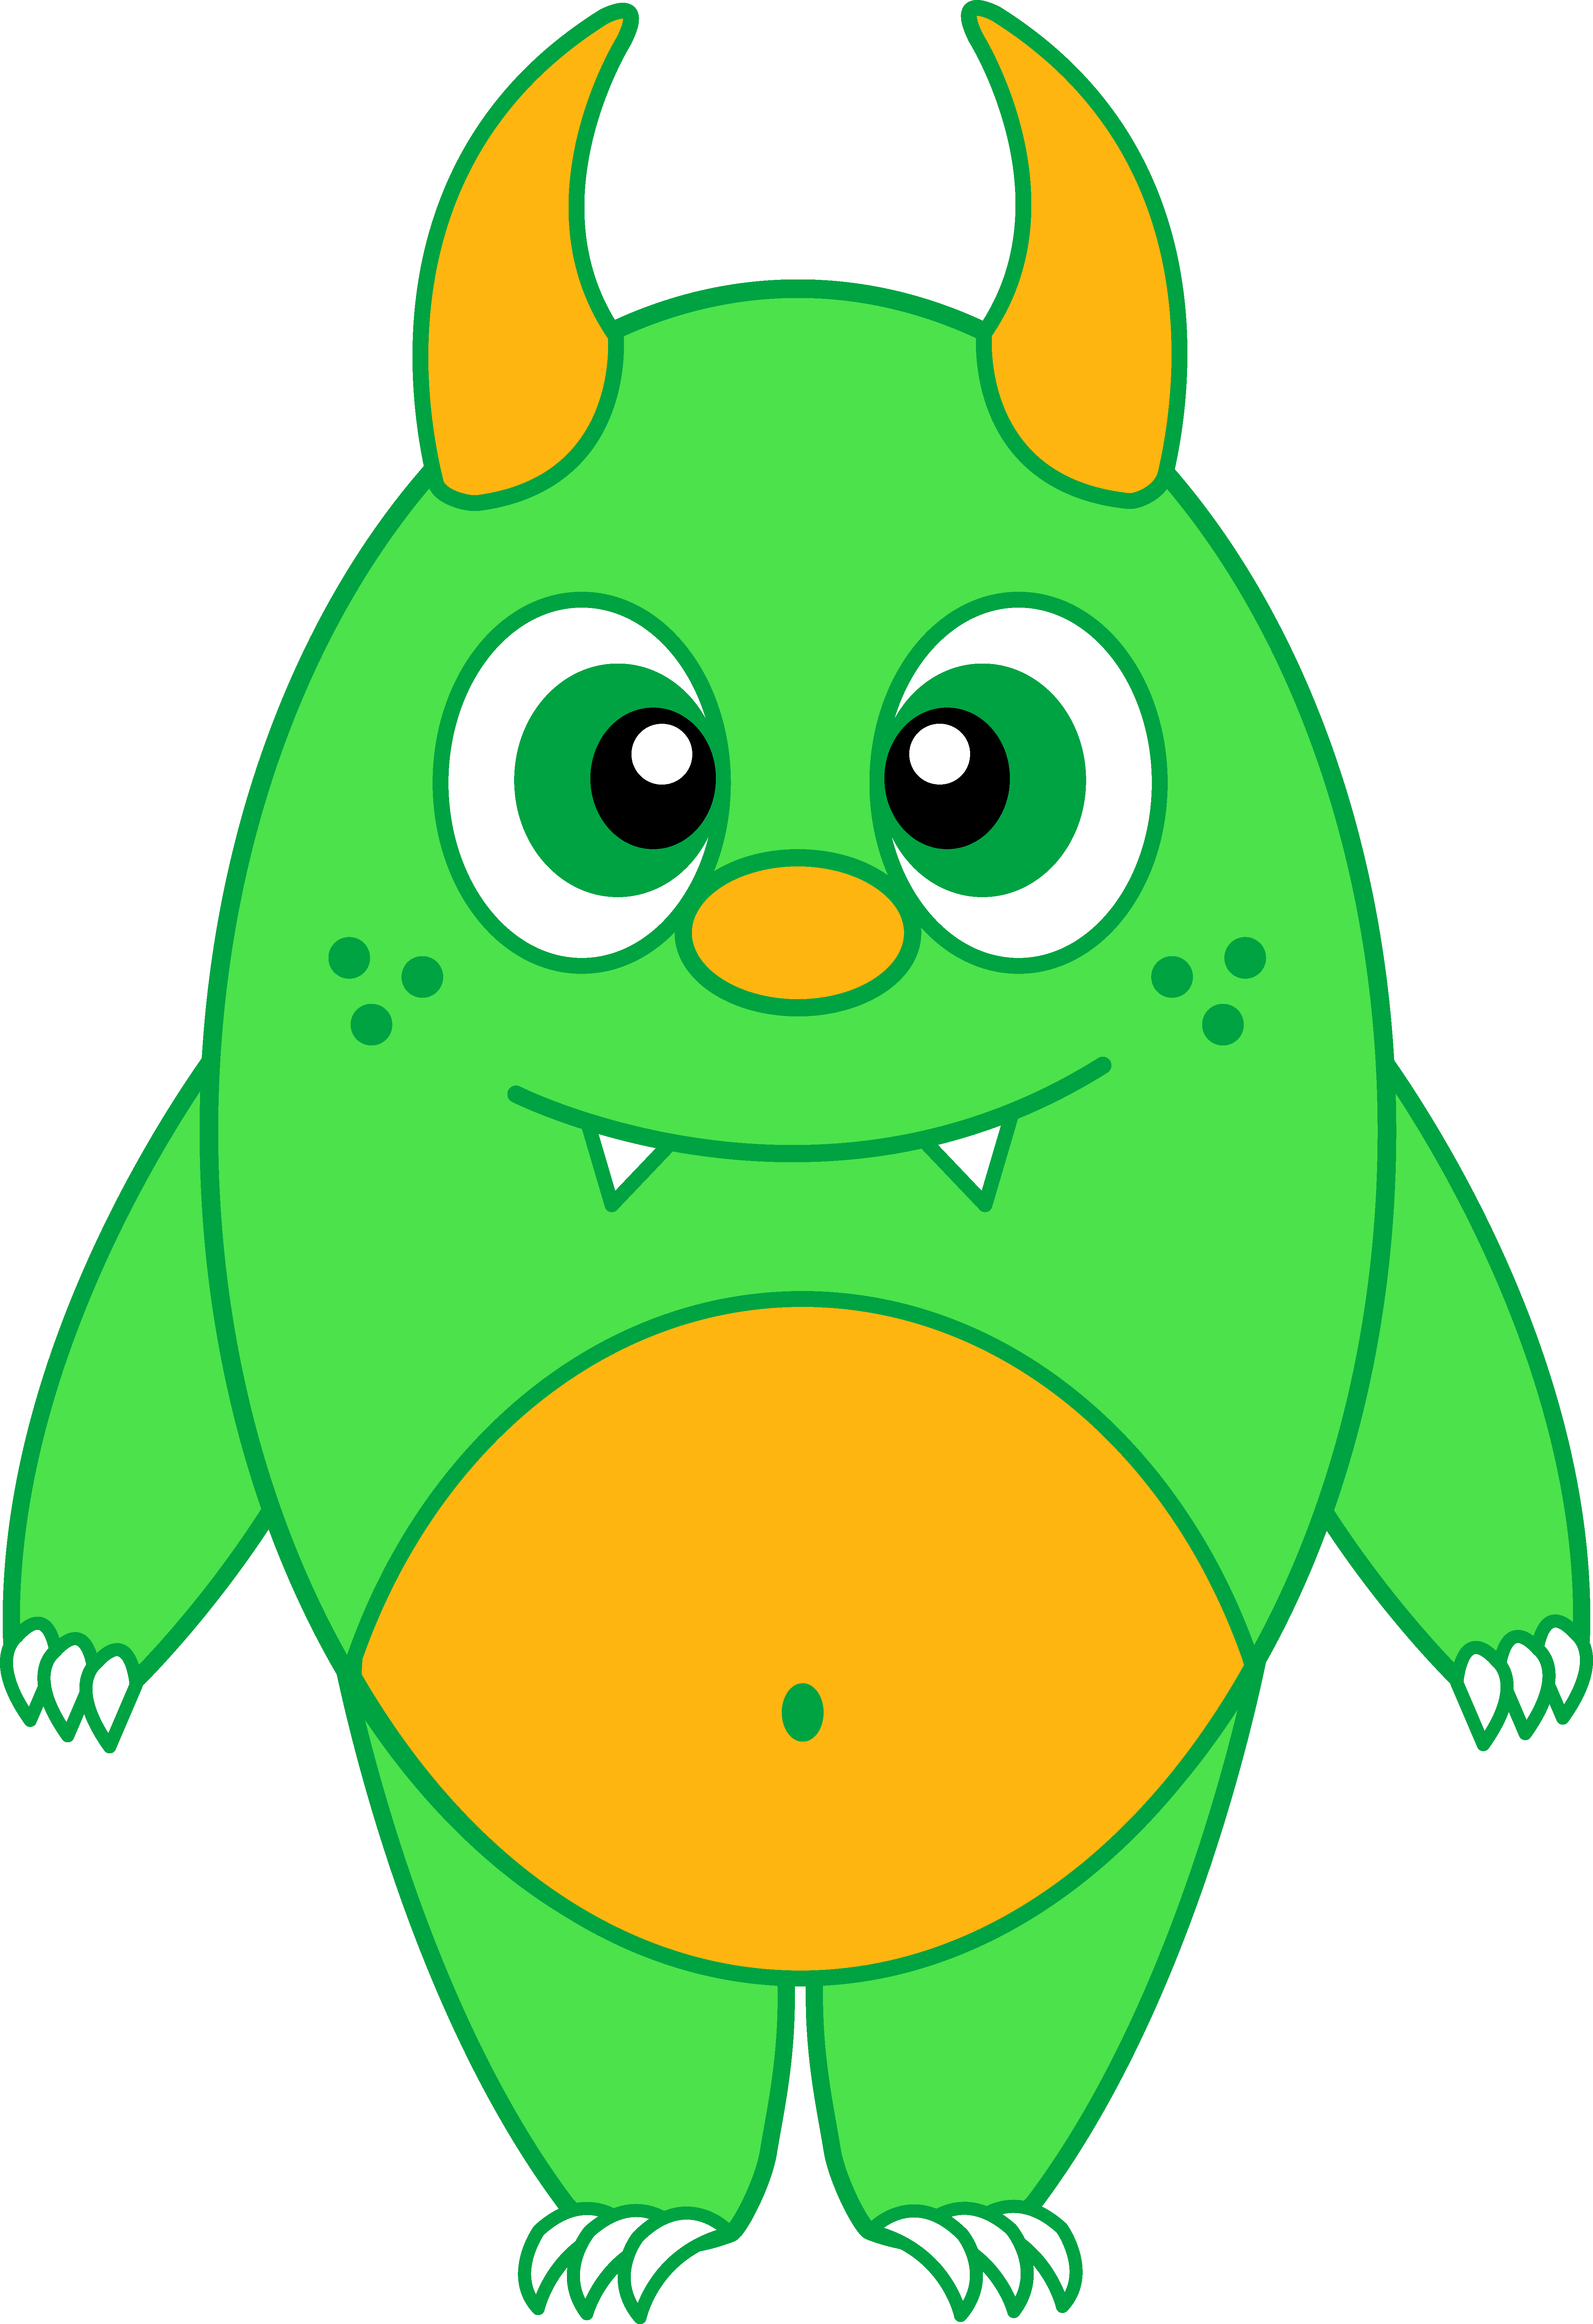 Free Silly Monster Cliparts, Download Free Clip Art, Free.